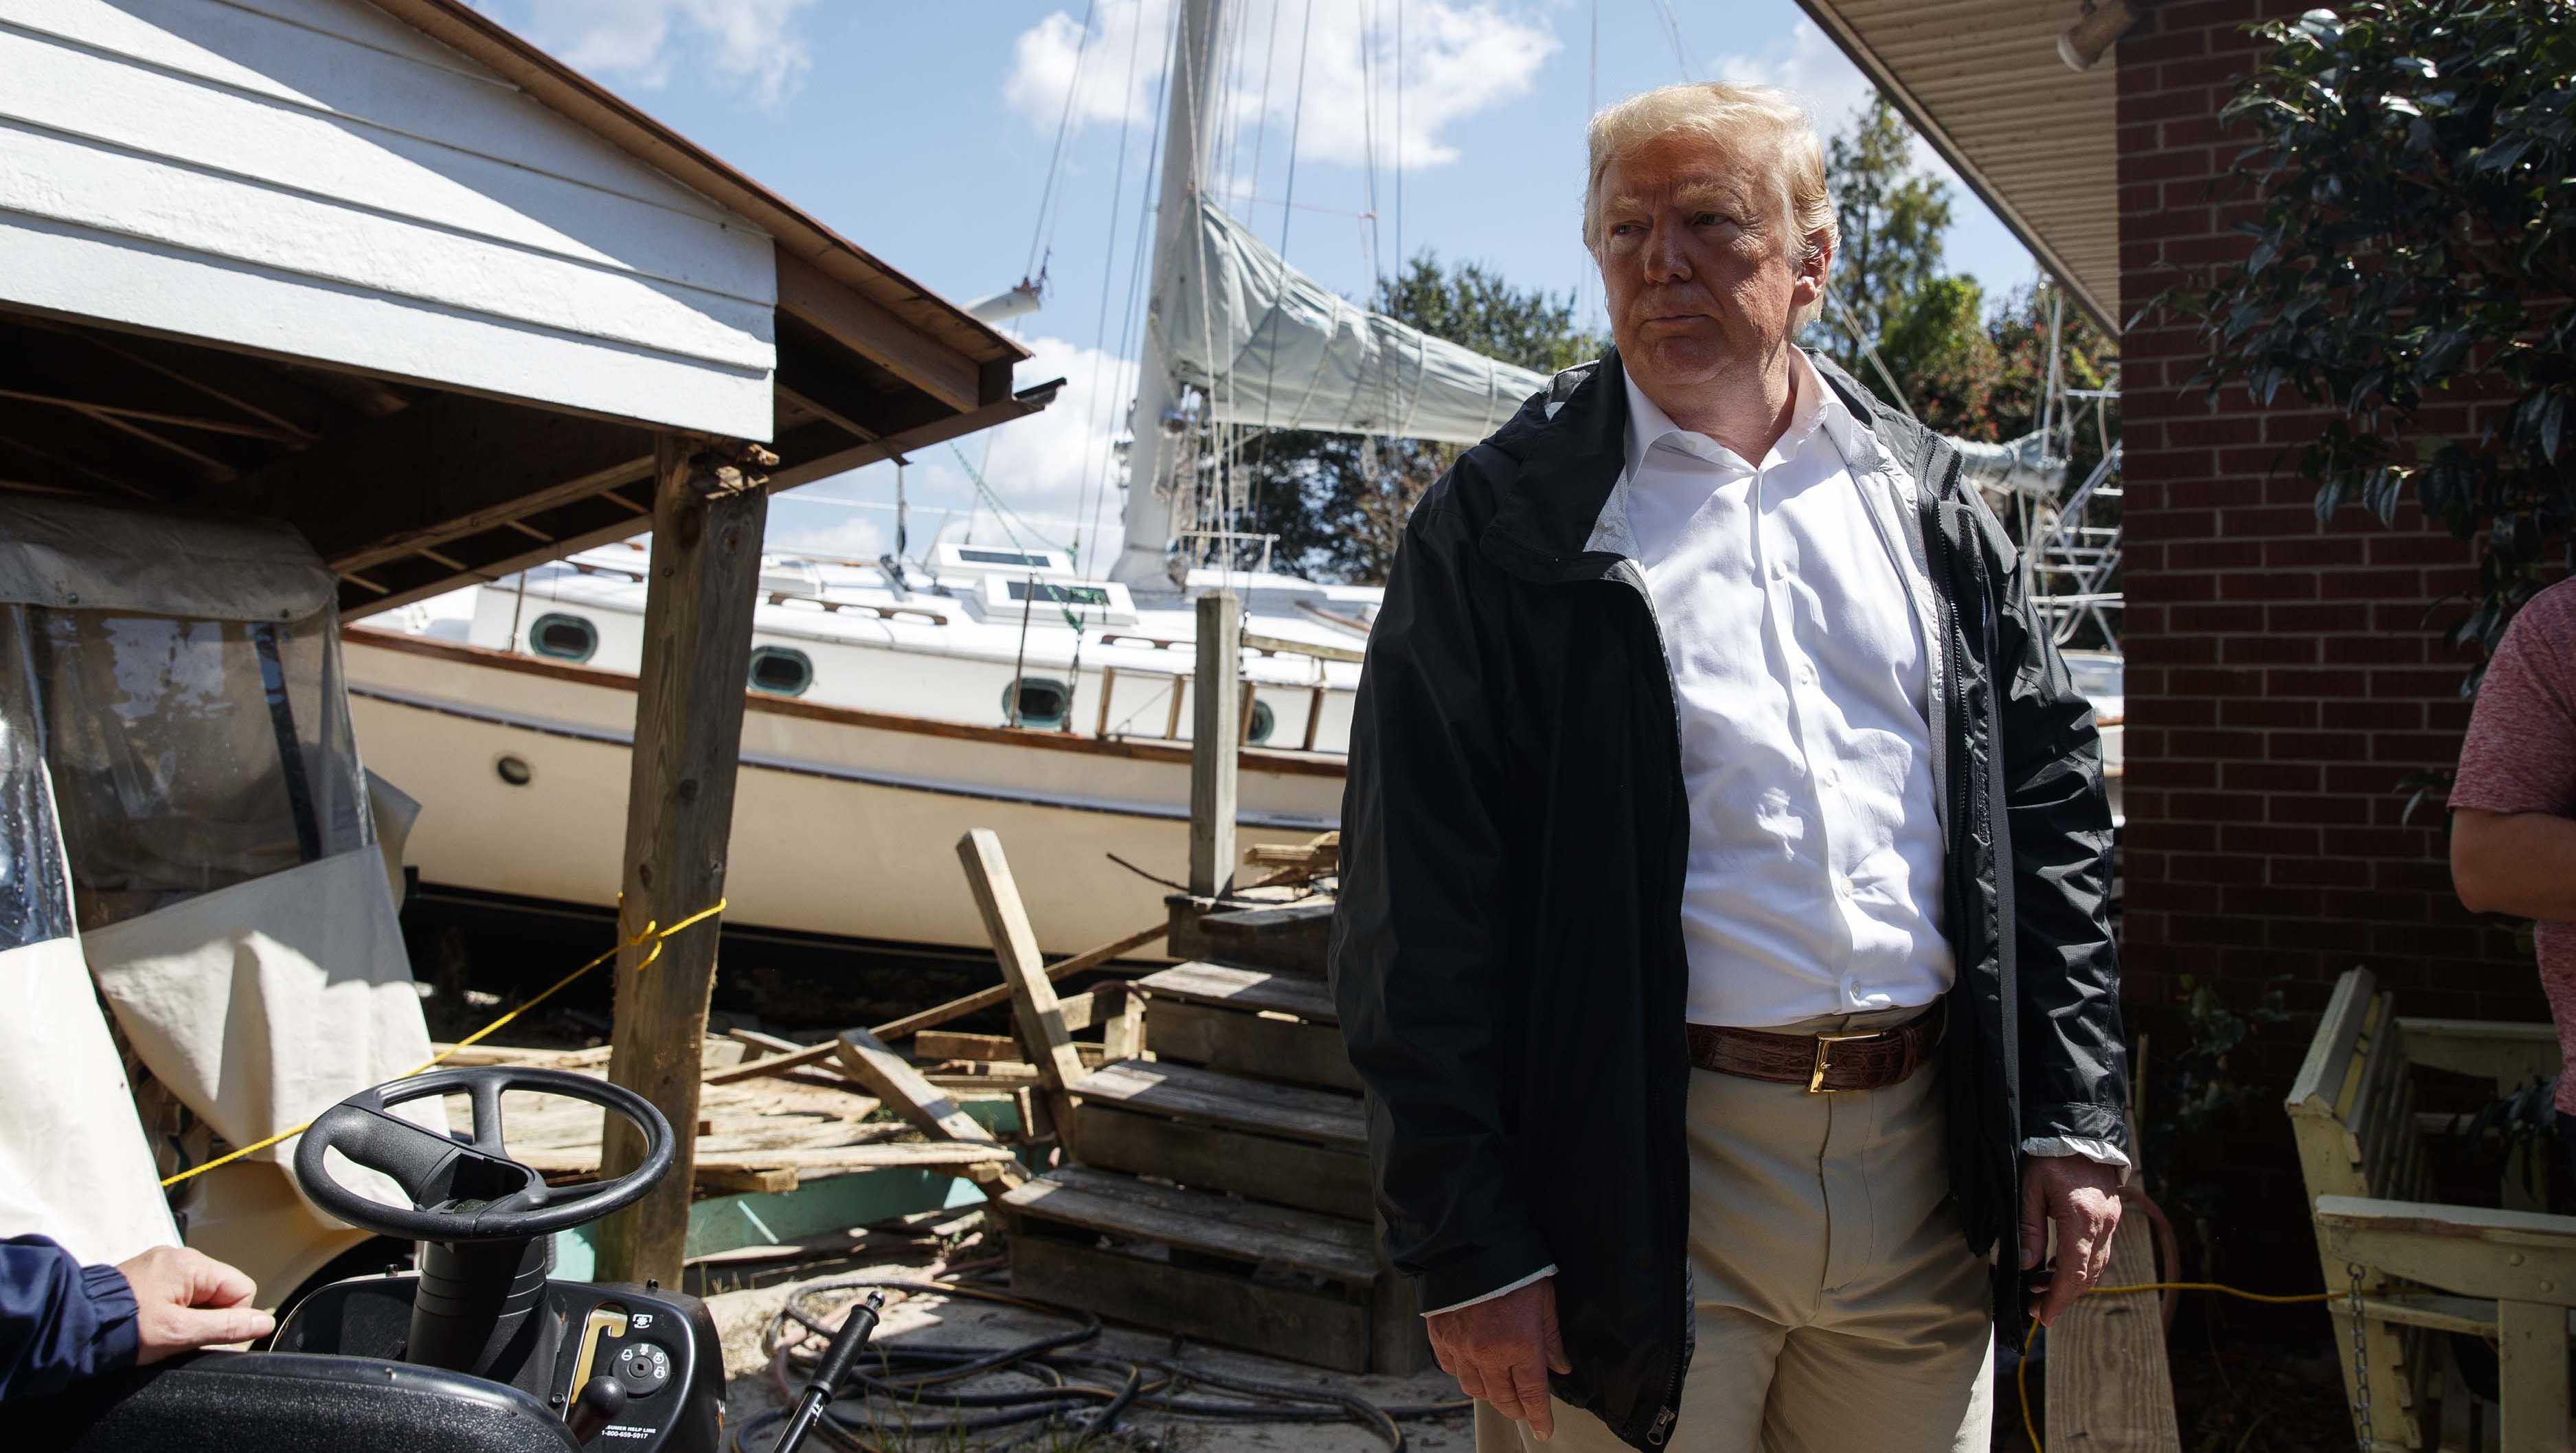 President Donald Trump visits a house where a boat wash ashore in the backyard while touring a neighborhood impacted by Hurricane Florence, Wednesday, Sept. 19, 2018, in New Bern, N.C. (AP Photo/Evan Vucci)